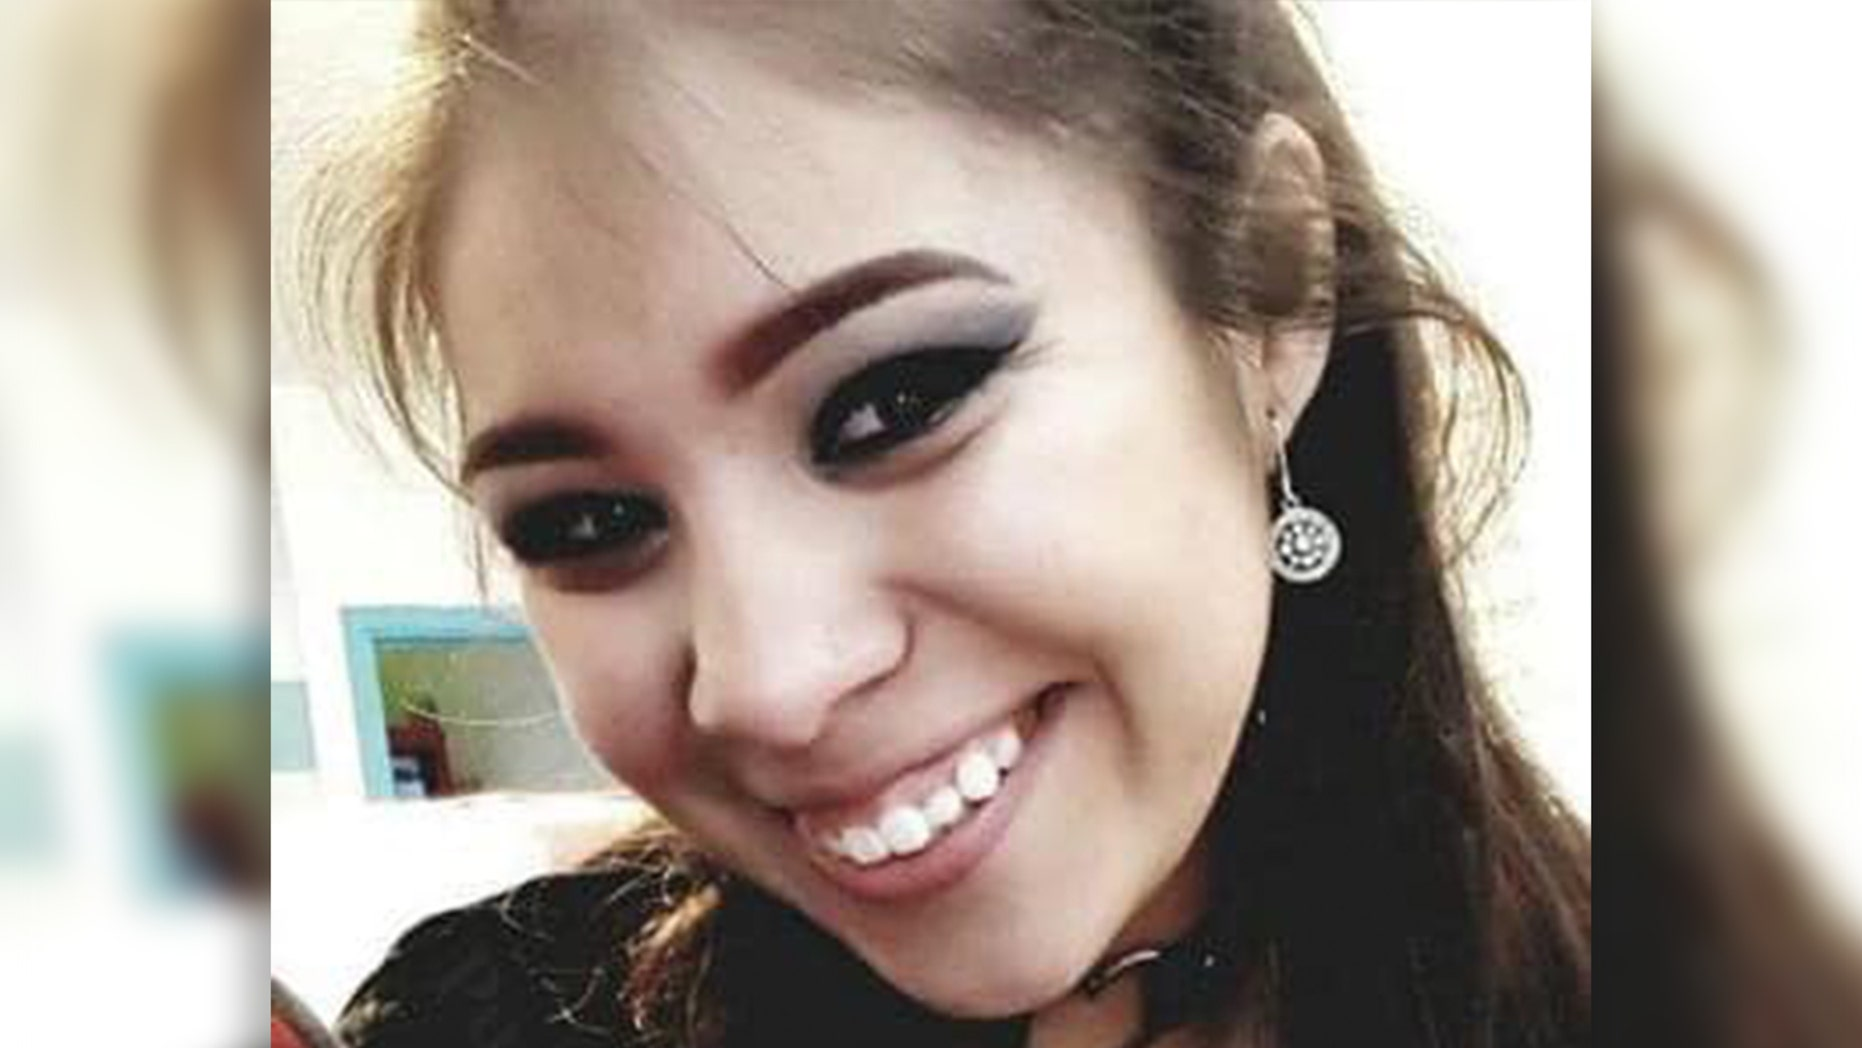 Dana Lizeth Lozano Chavez, 18, was murdered by her ex-boyfriend in Juarez, Mexico, authorities said. Lozano's death sparked protests in the border city that has saw more than 350 murders already this year.